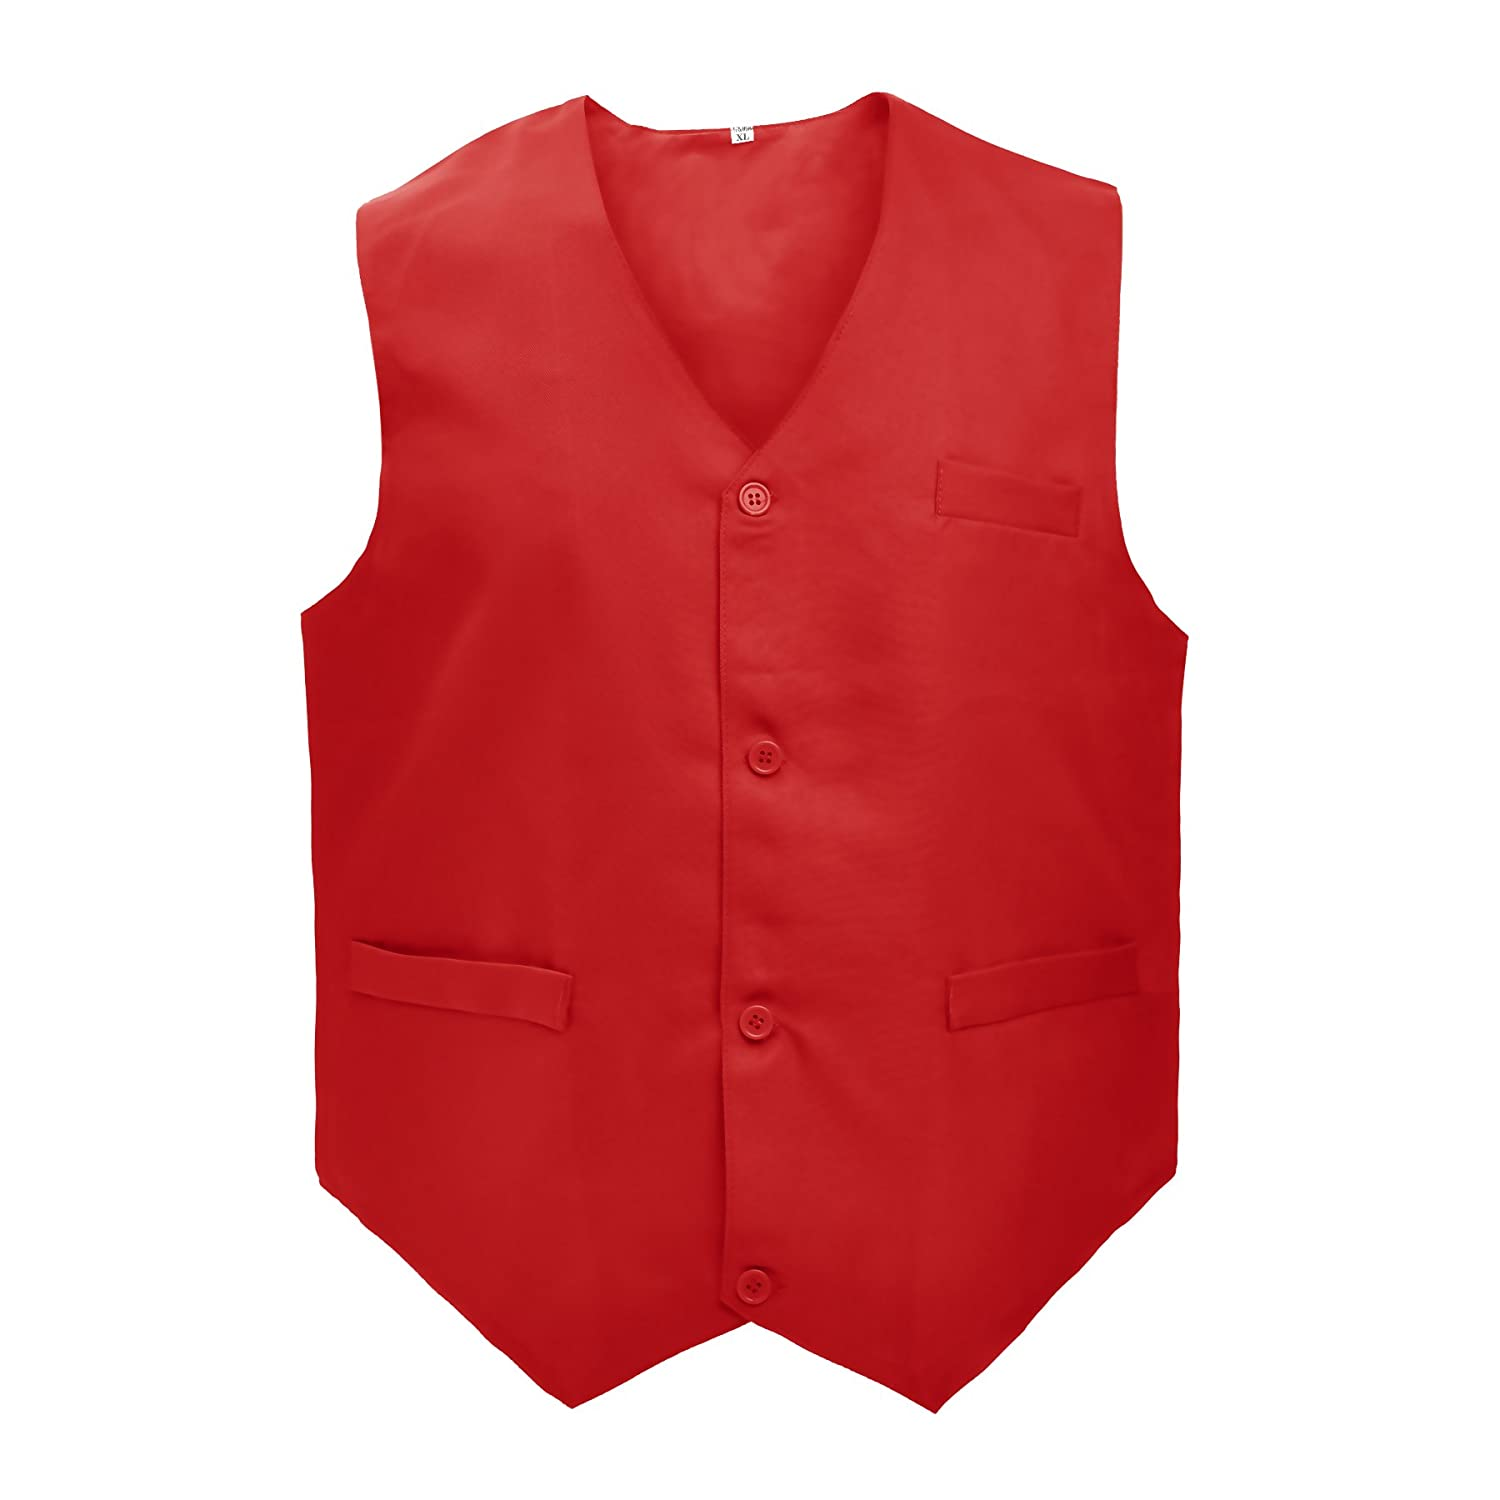 TopTie Waiter Bartender Uniform Unisex Button Vest for Supermarket Clerk & Volunteer VESX-DK60030